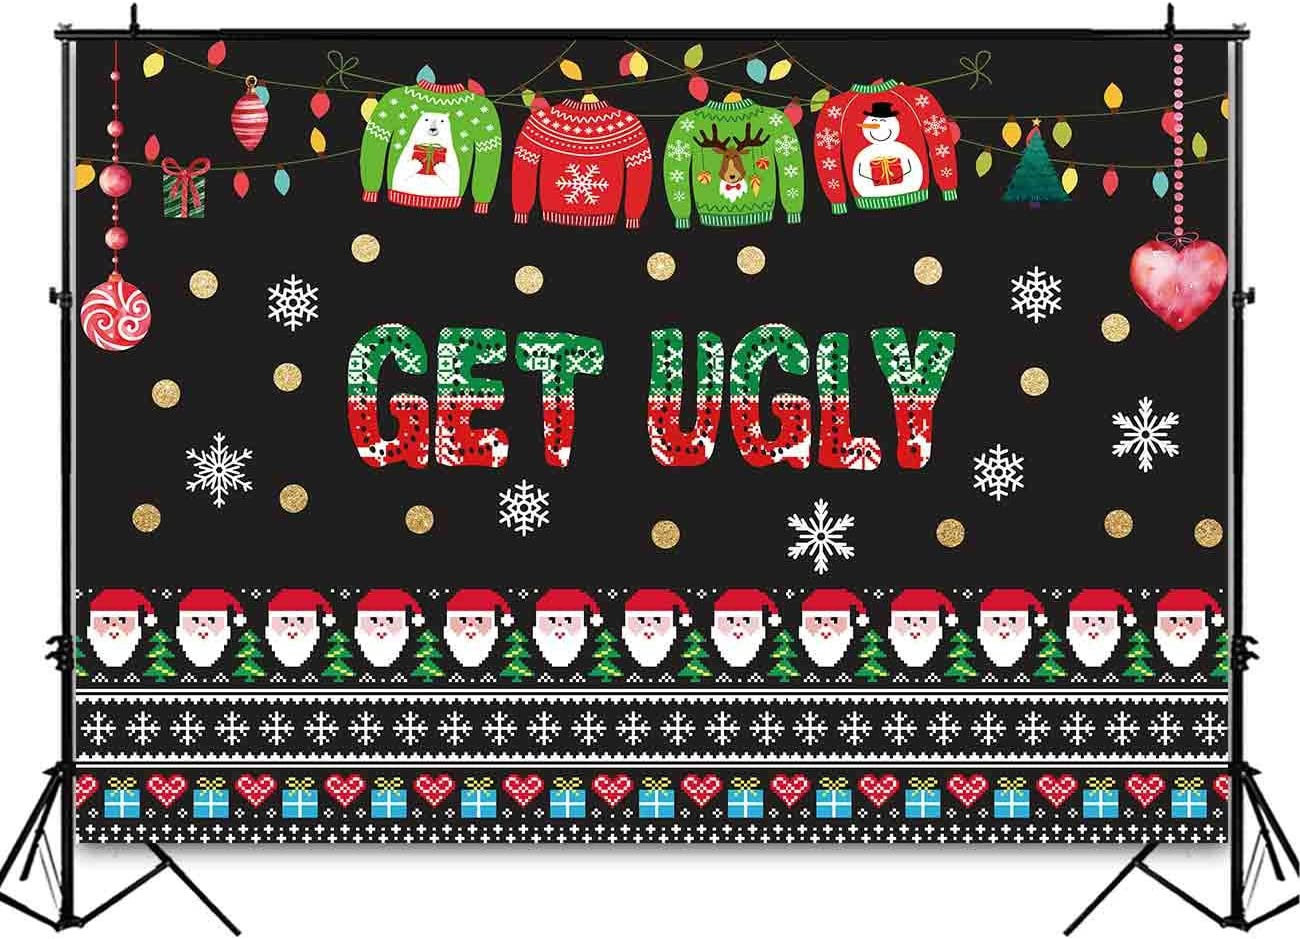 Funnytree 8x8ft Ugly Christmas Sweater Party Backdrop Tacky Blackboard Winter Xmas Photography Background Elfed Kids Chalkboard Photobooth Decorations Banner Invitation